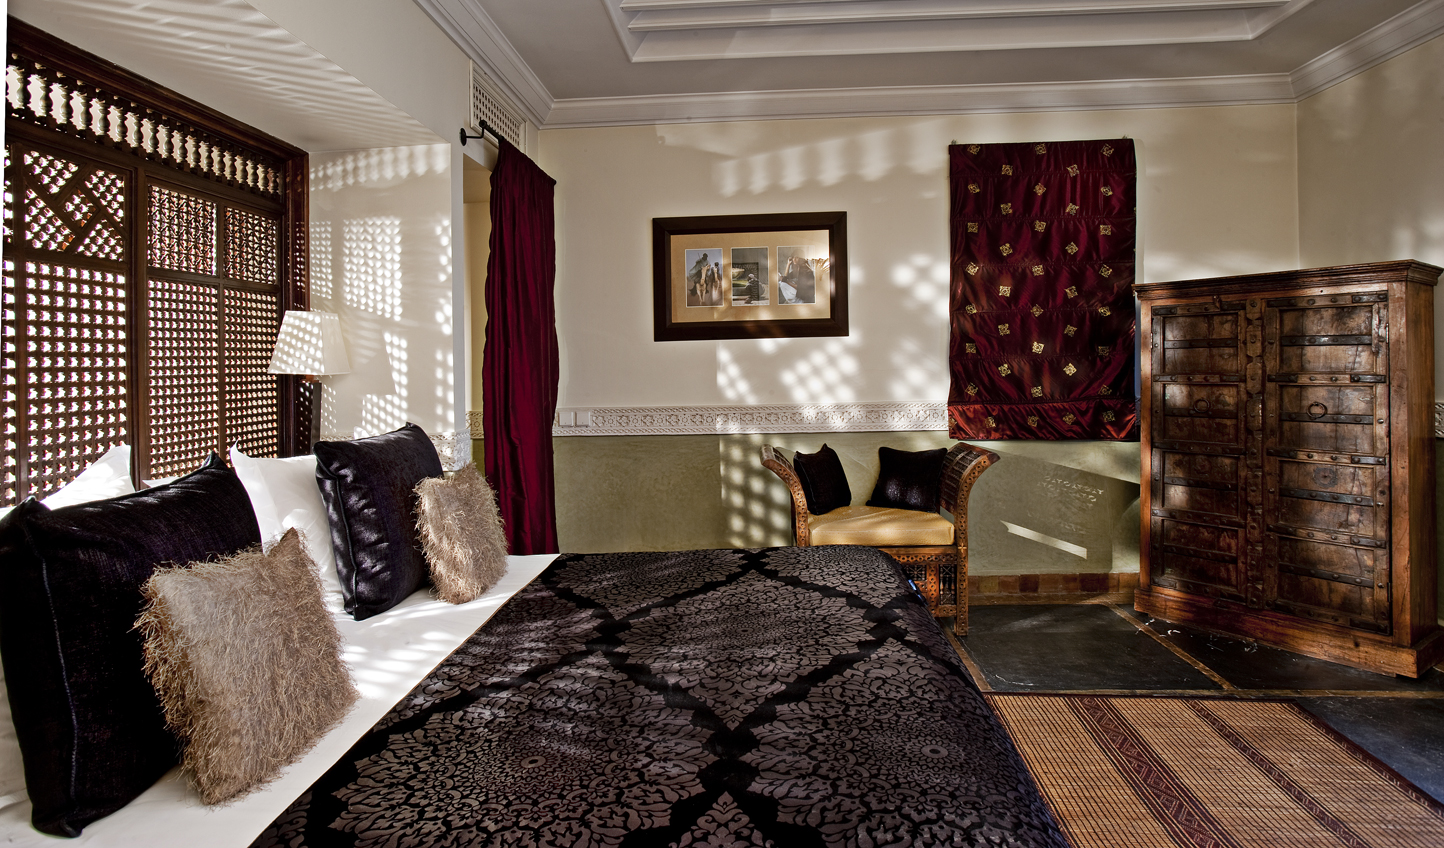 Relax in your beautiful suite